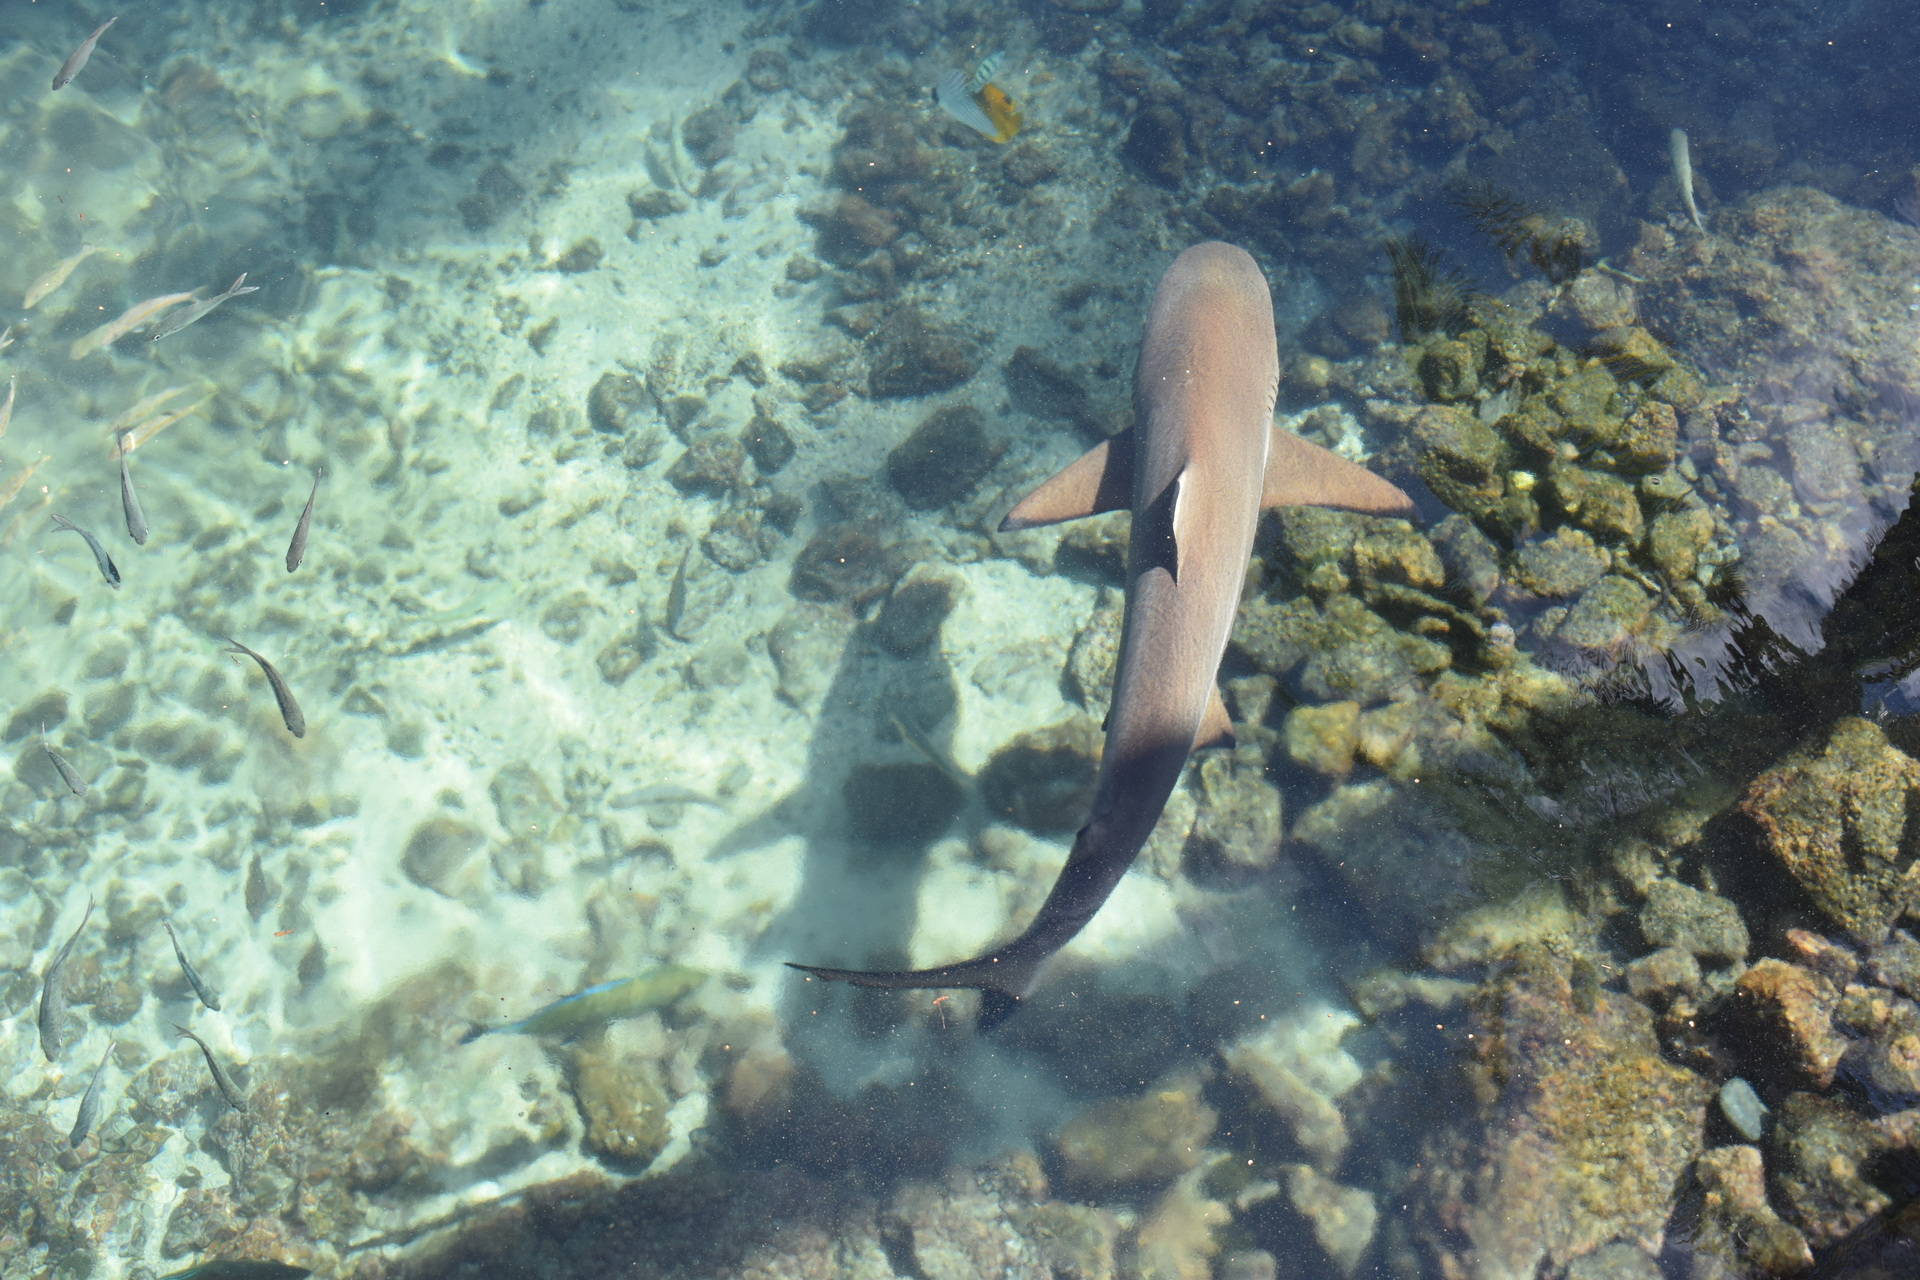 Underwater view of shark with fishes